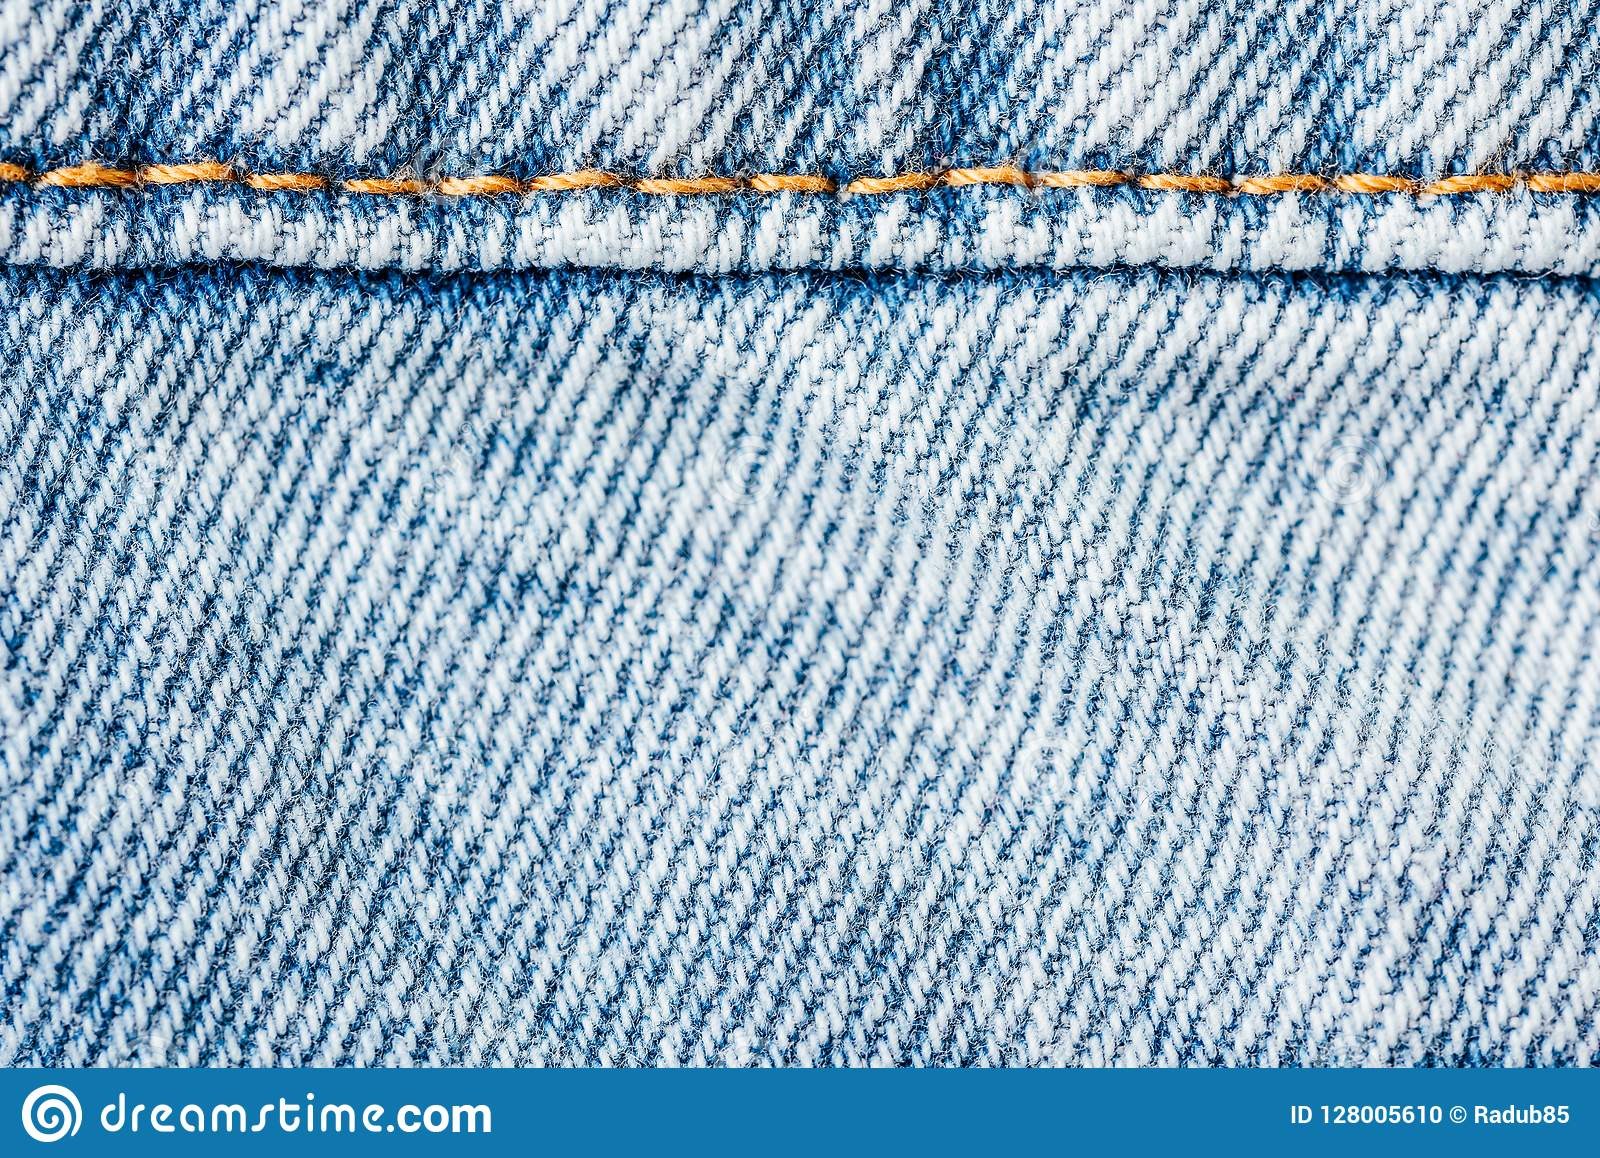 77907080ab7 Jeans Pocket Closeup With Denim Texture Stock Photo - Image of ...